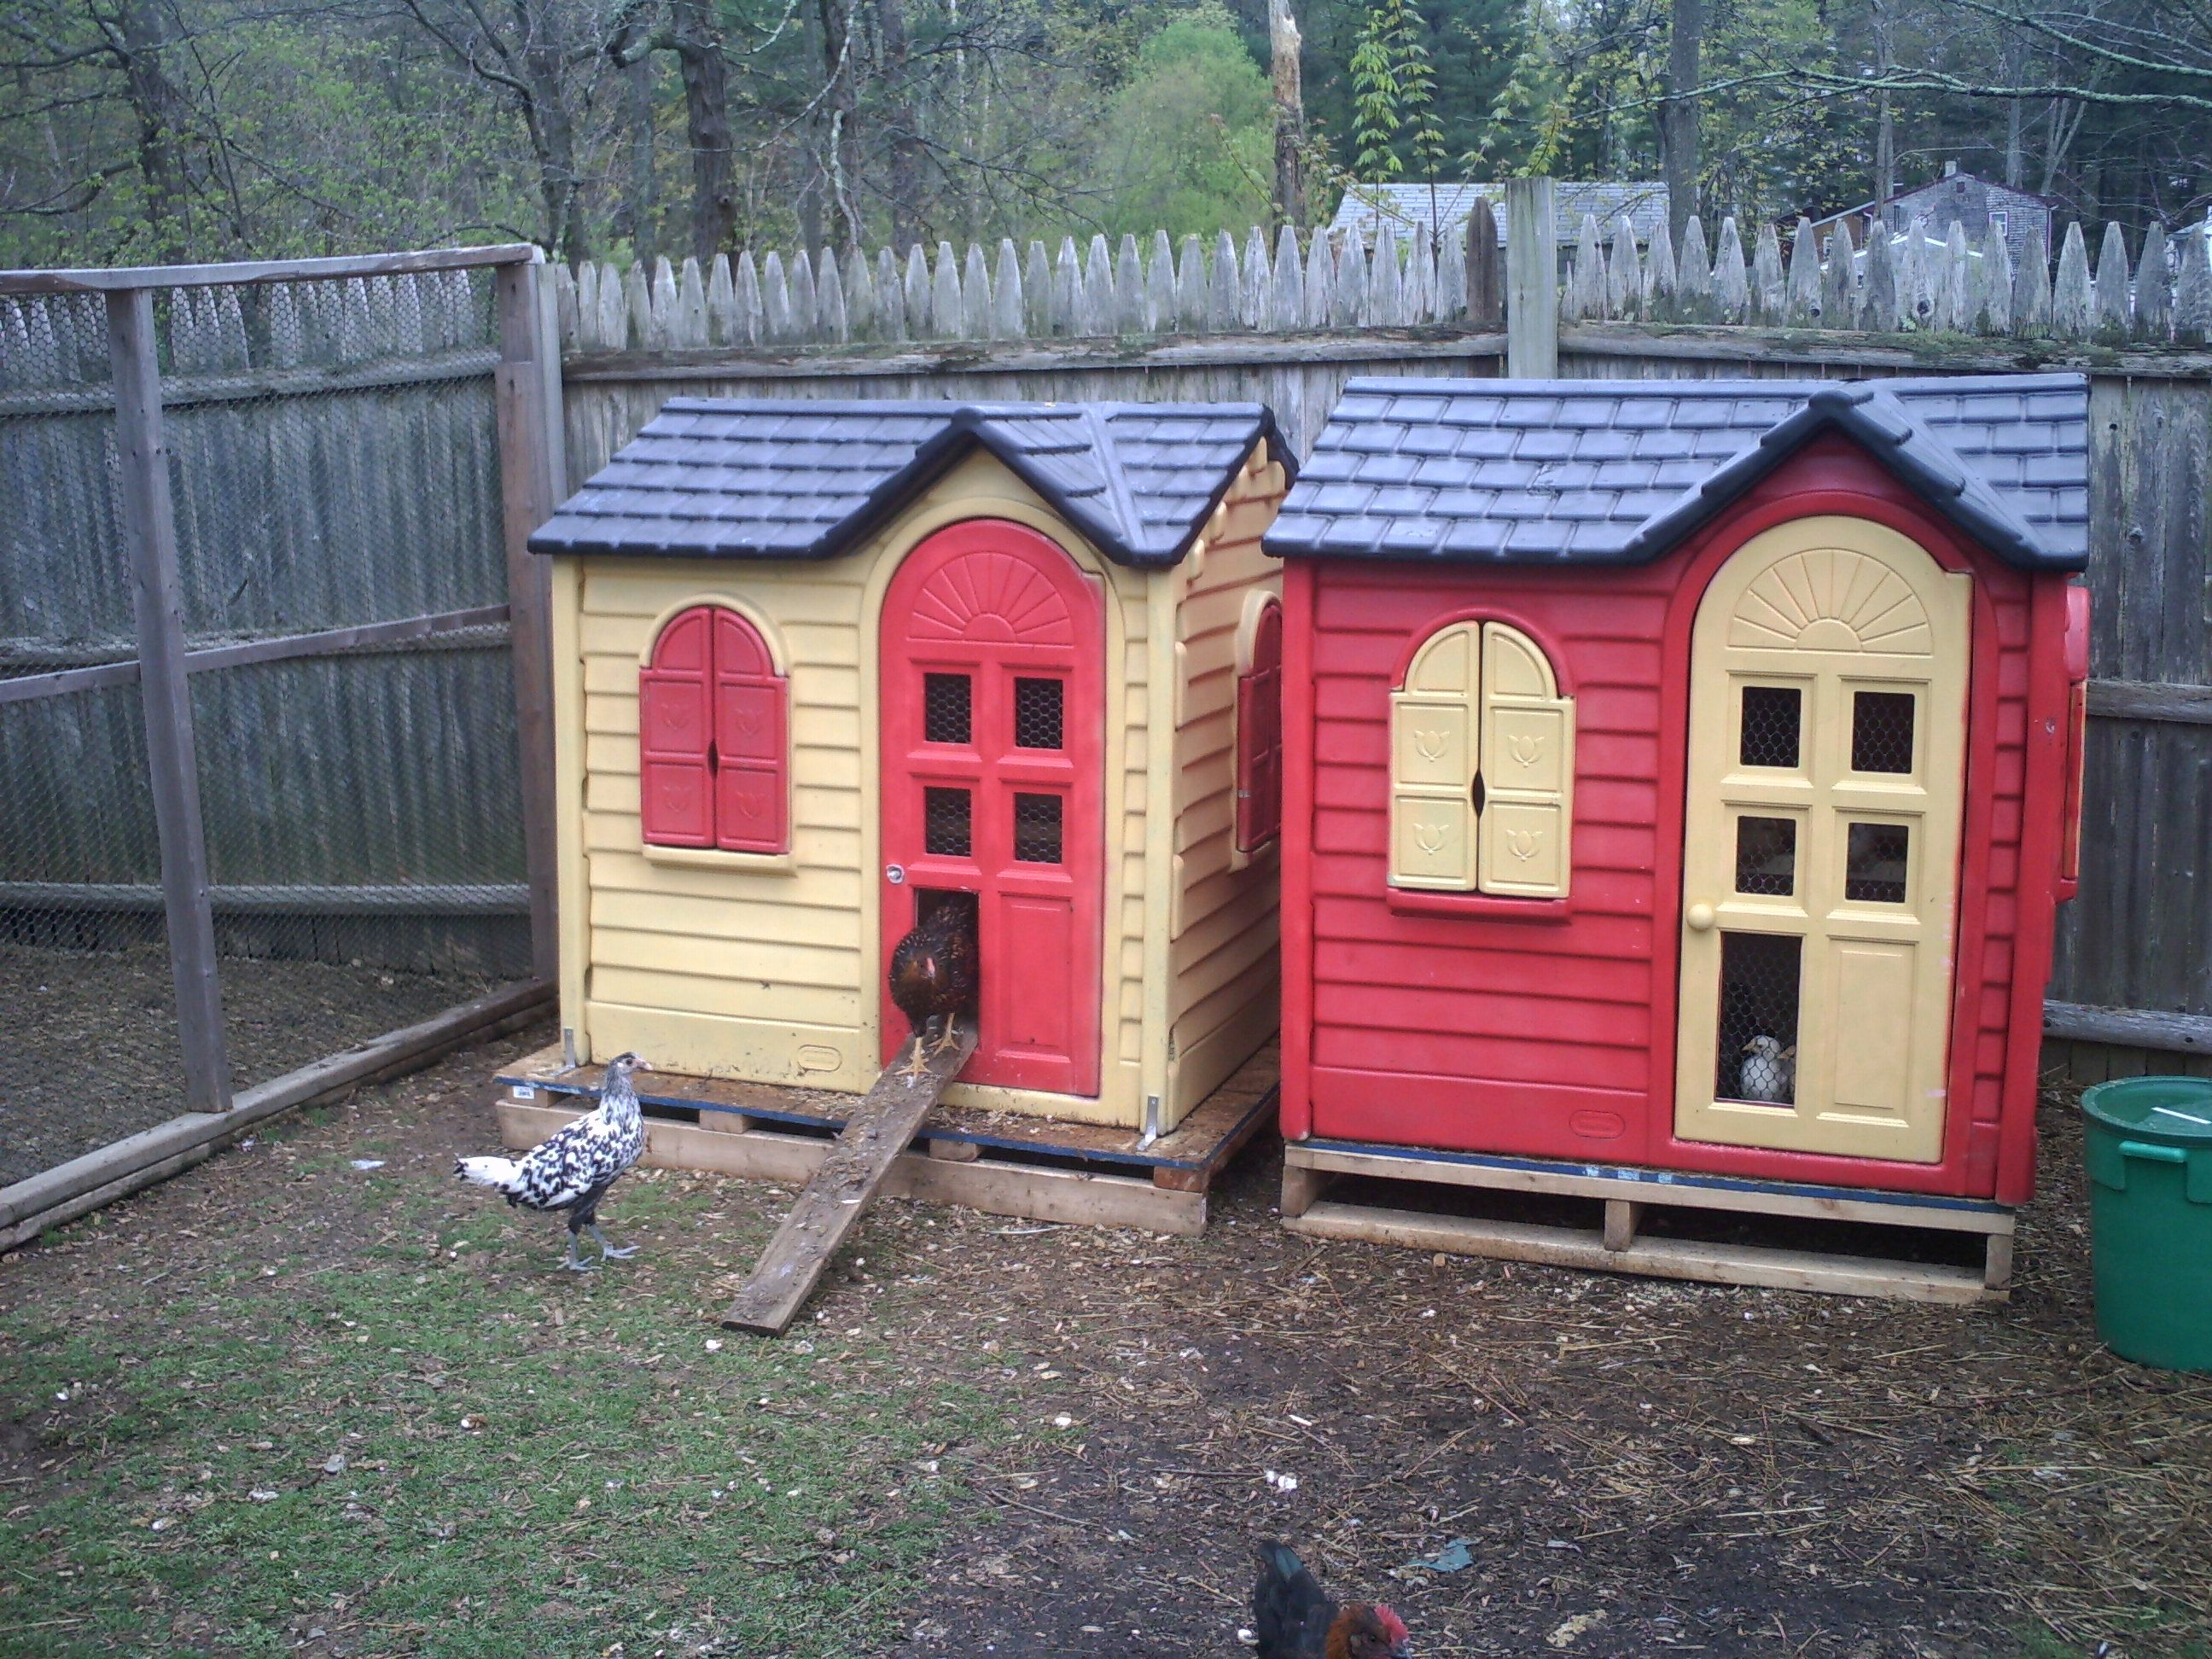 My Upcycled Playhouse Chicken Coops Chickens Backyard Building A Chicken Coop Chickens